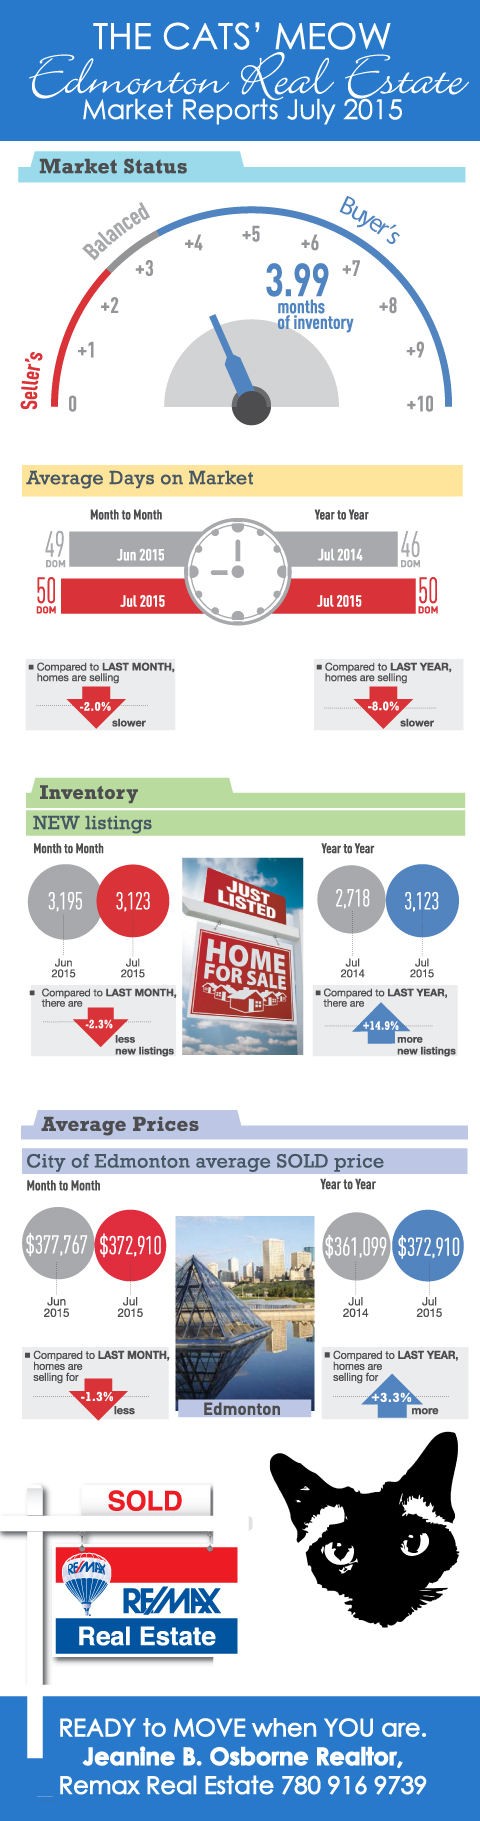 Edmonton-Real-Estate-Market-Report-July-2015